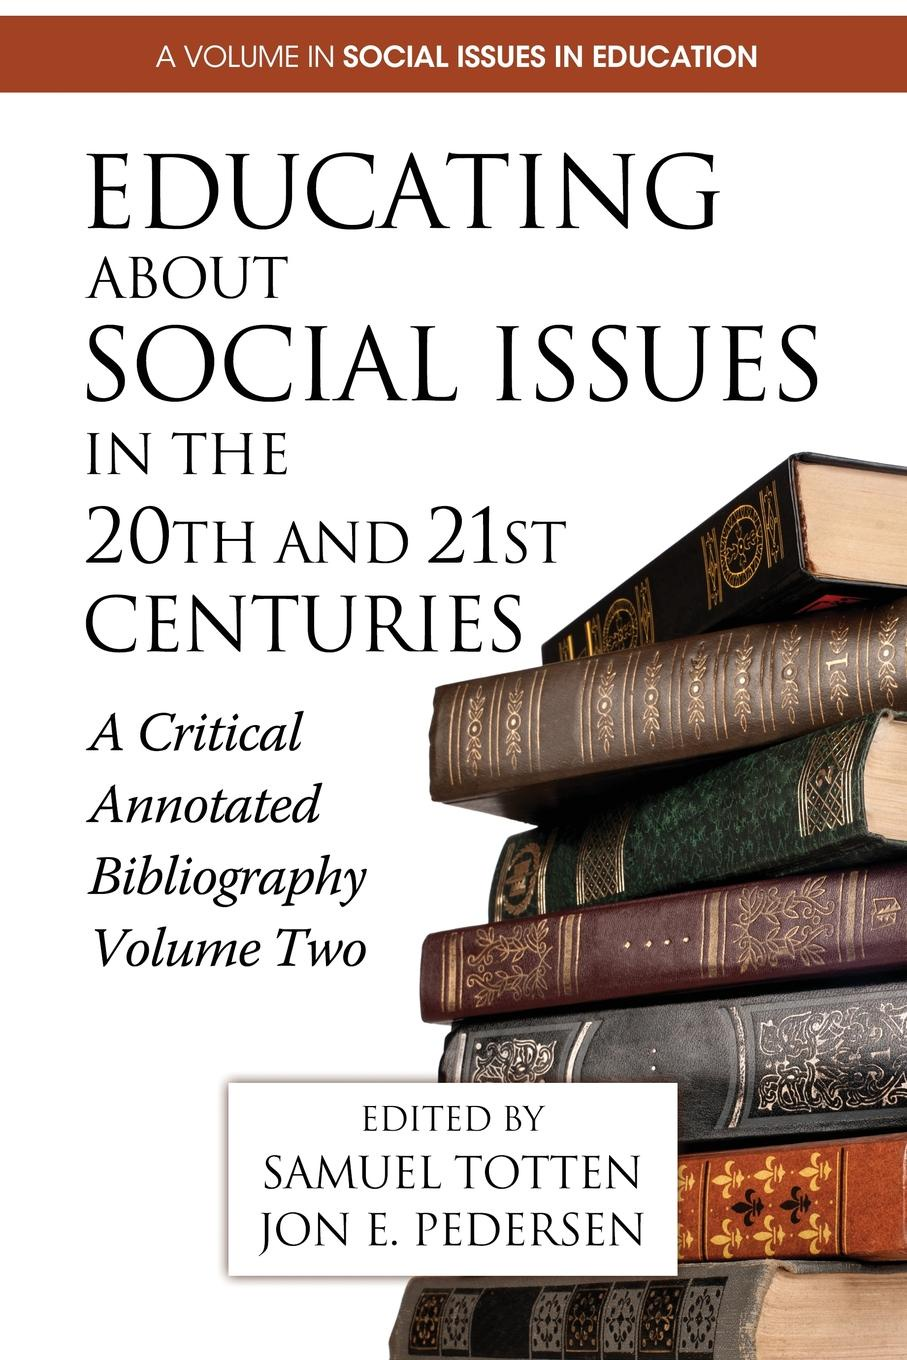 Educating about Social Issues in the 20th and 21st Centuries. A Critical Annotated Bibliography Volume Two john k rhoads critical issues in social theory